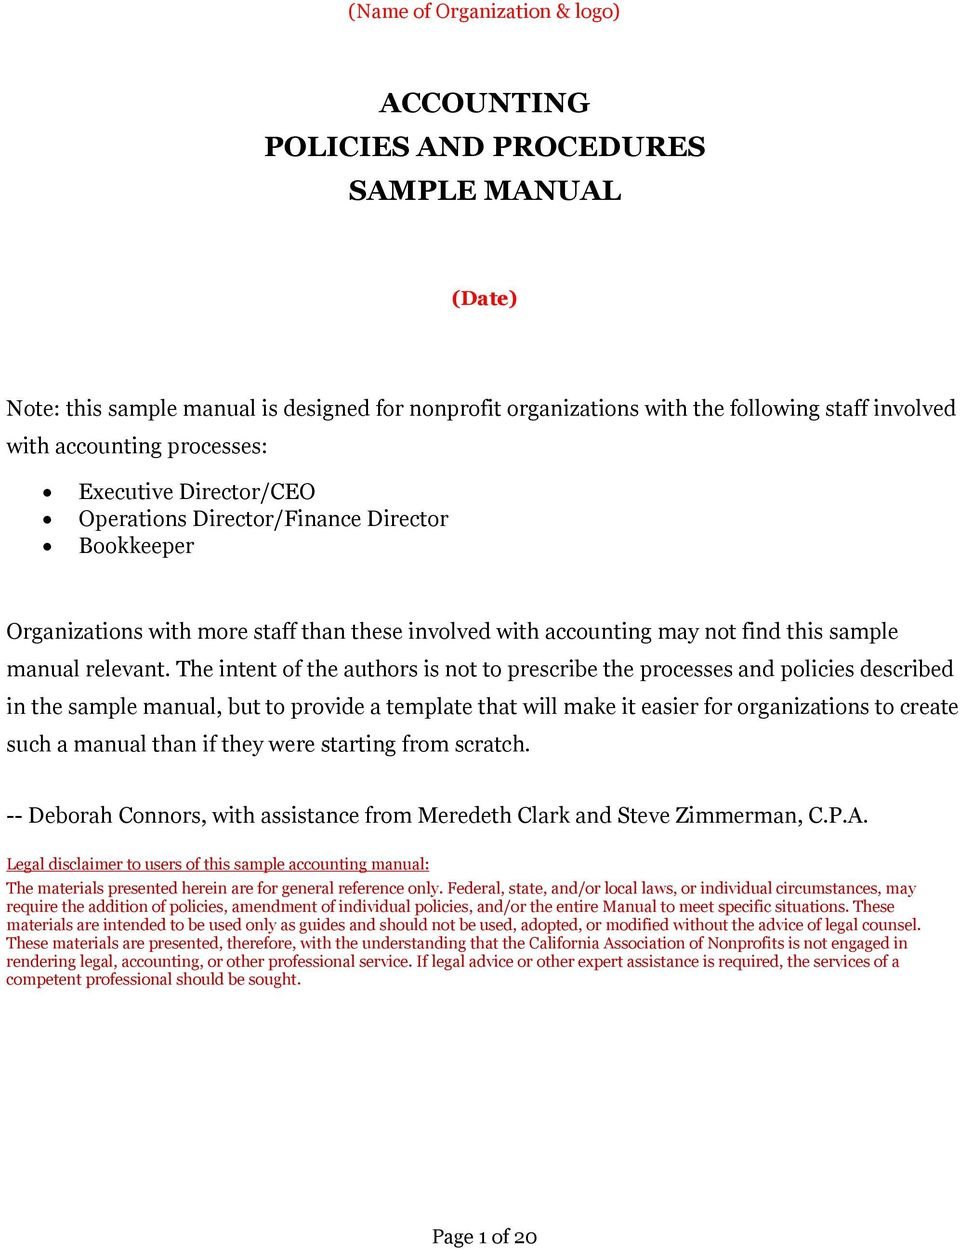 Accounting Policies And Procedures Sample Manual Pdf Free